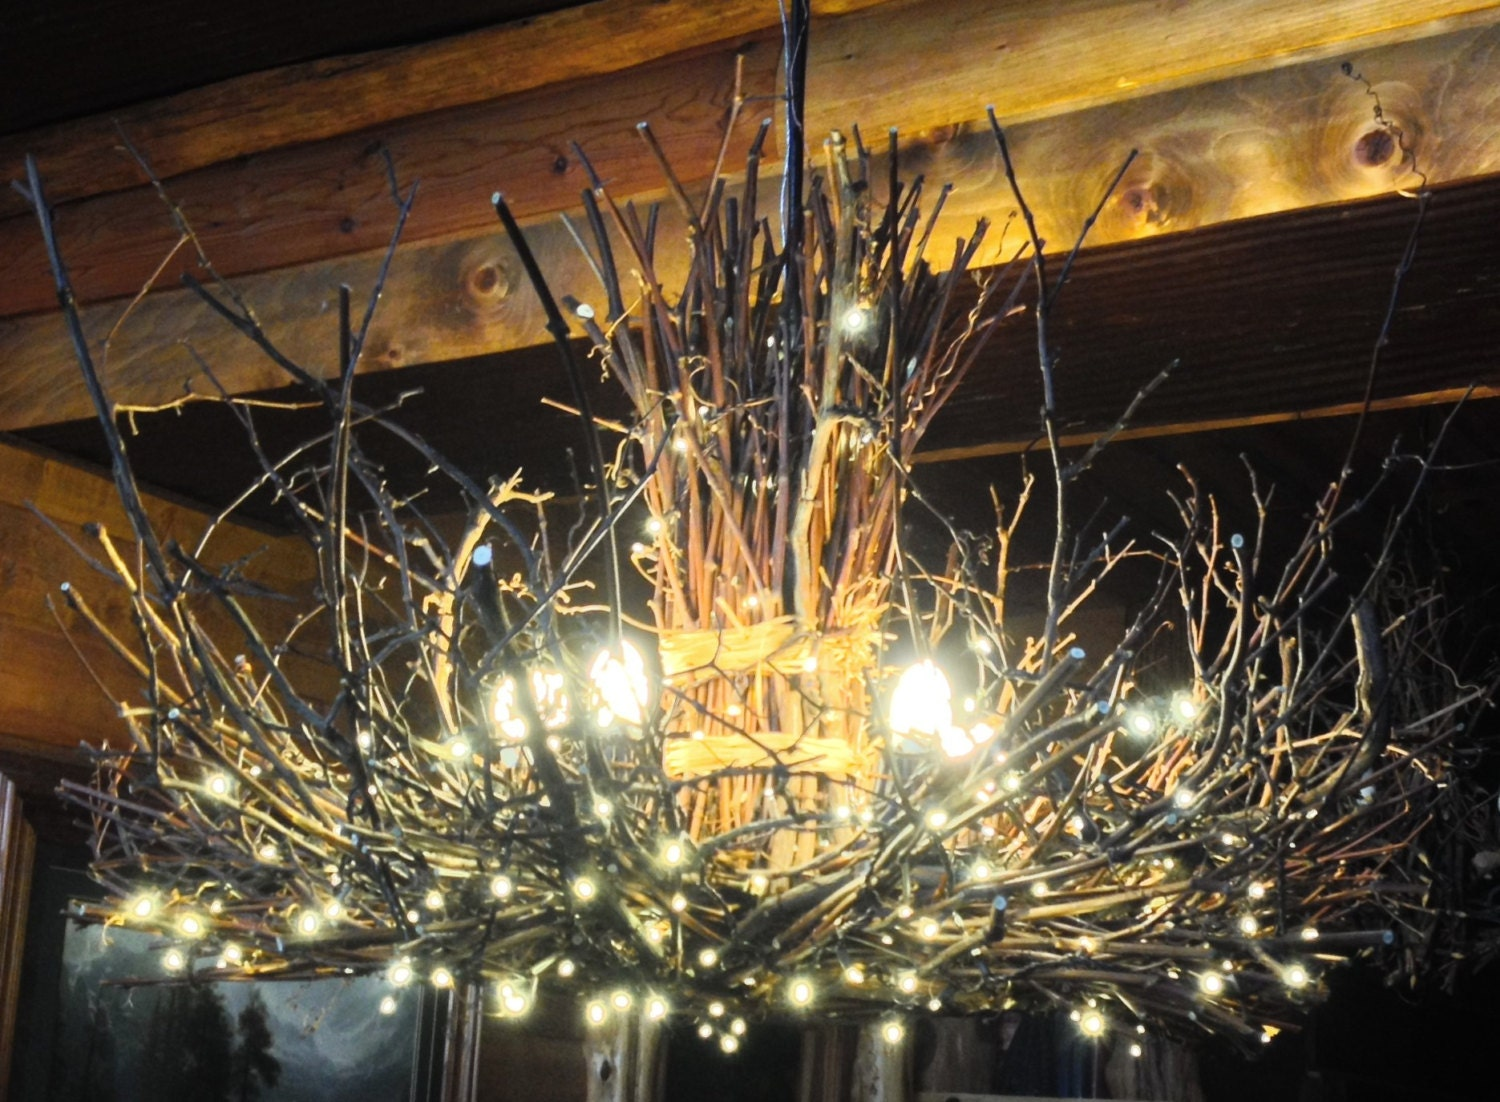 The Appalachian Rustic Outdoor Chandelier 5 Candle Etsy